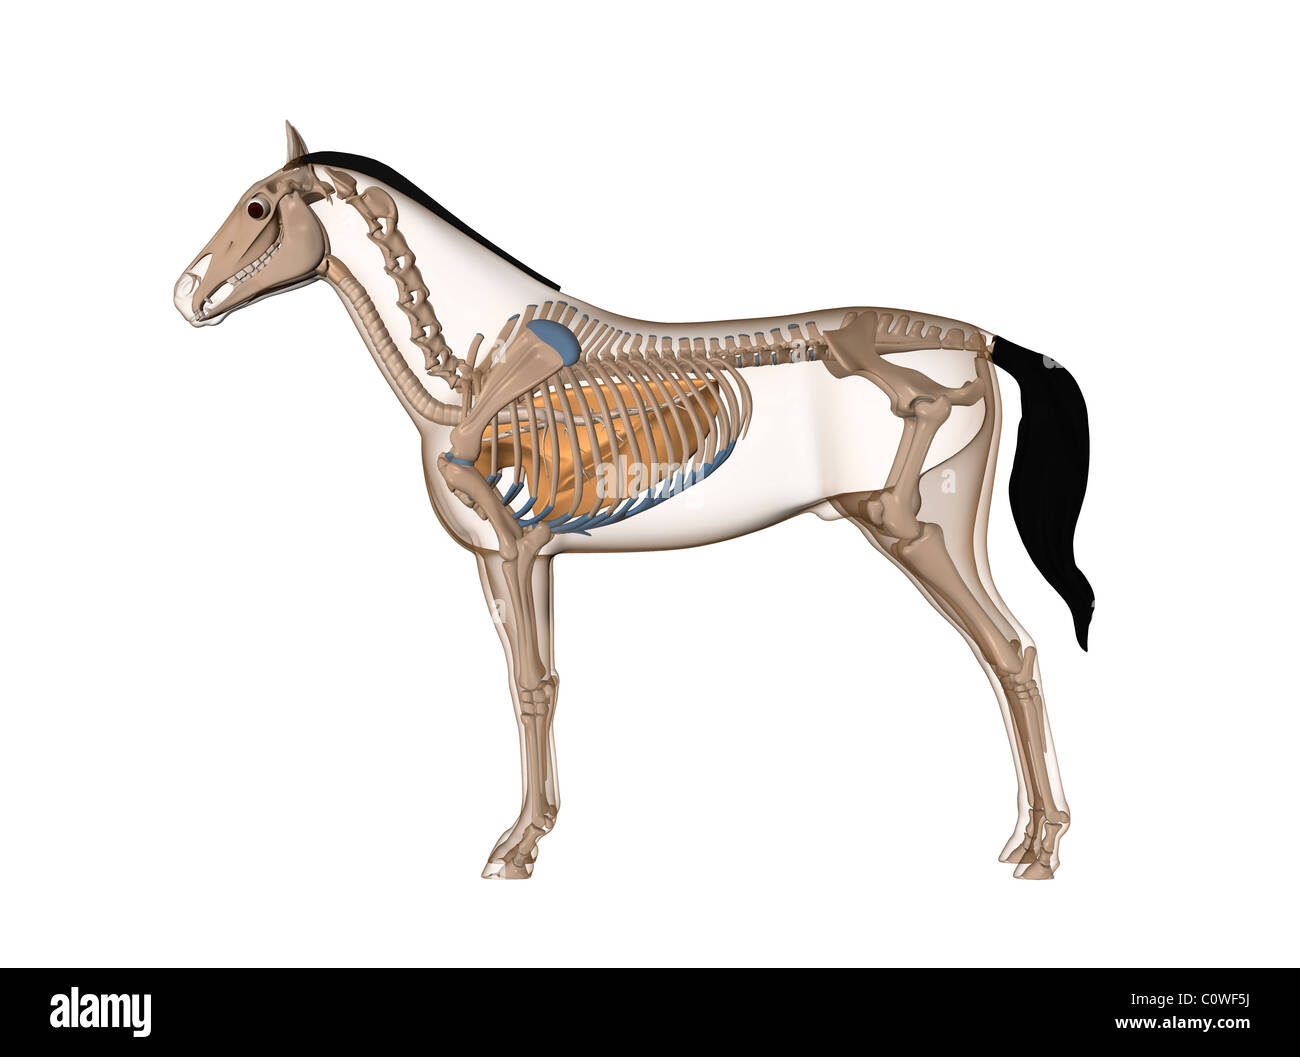 horse respiratory system diagram 7 blade plug wiring lungs related keywords long tail